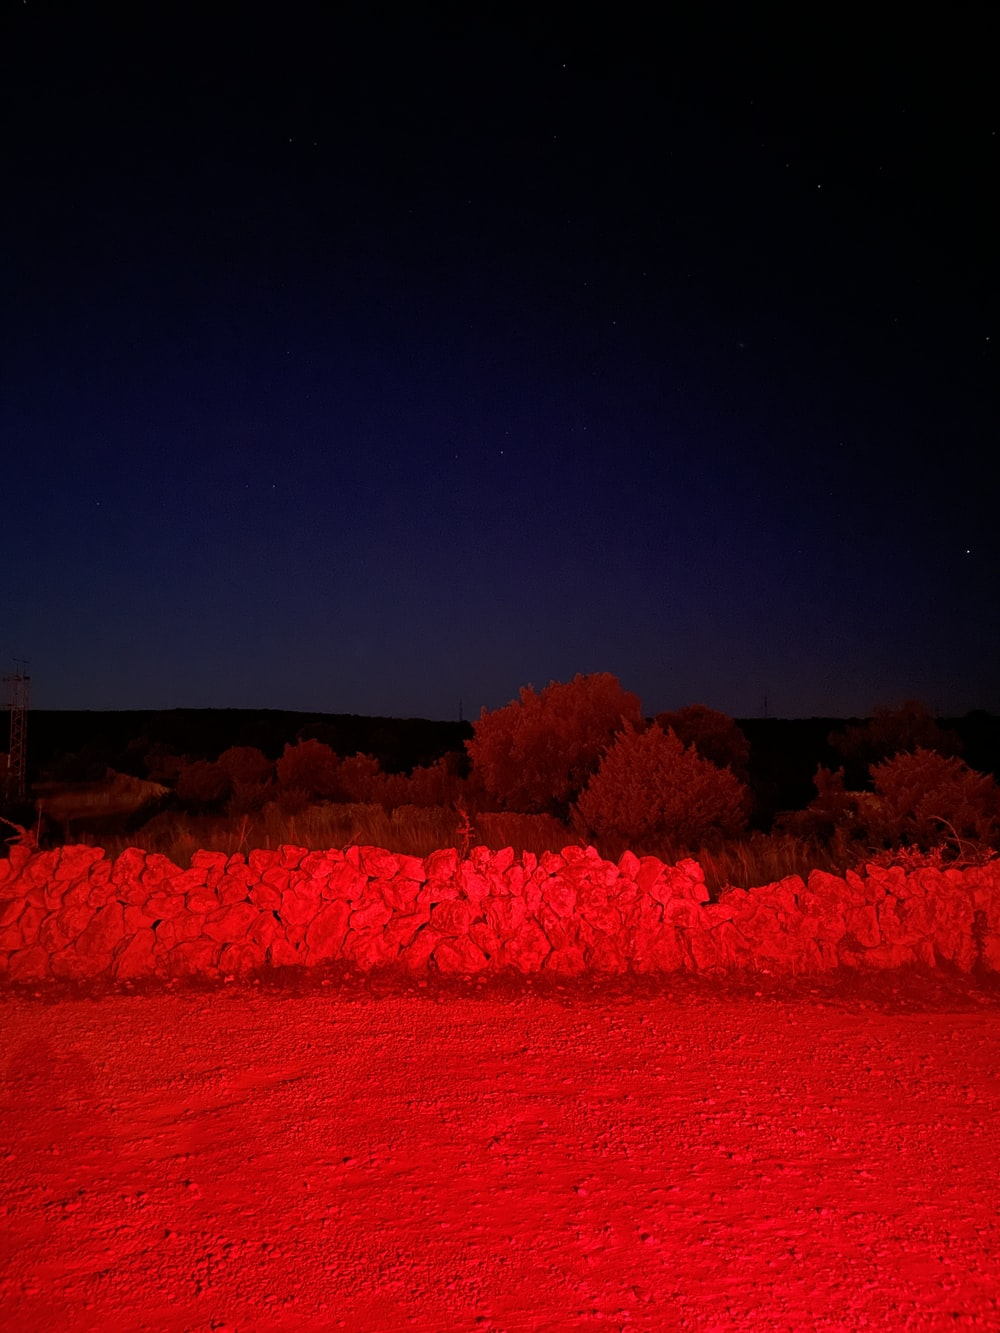 red trees under blue sky during night time